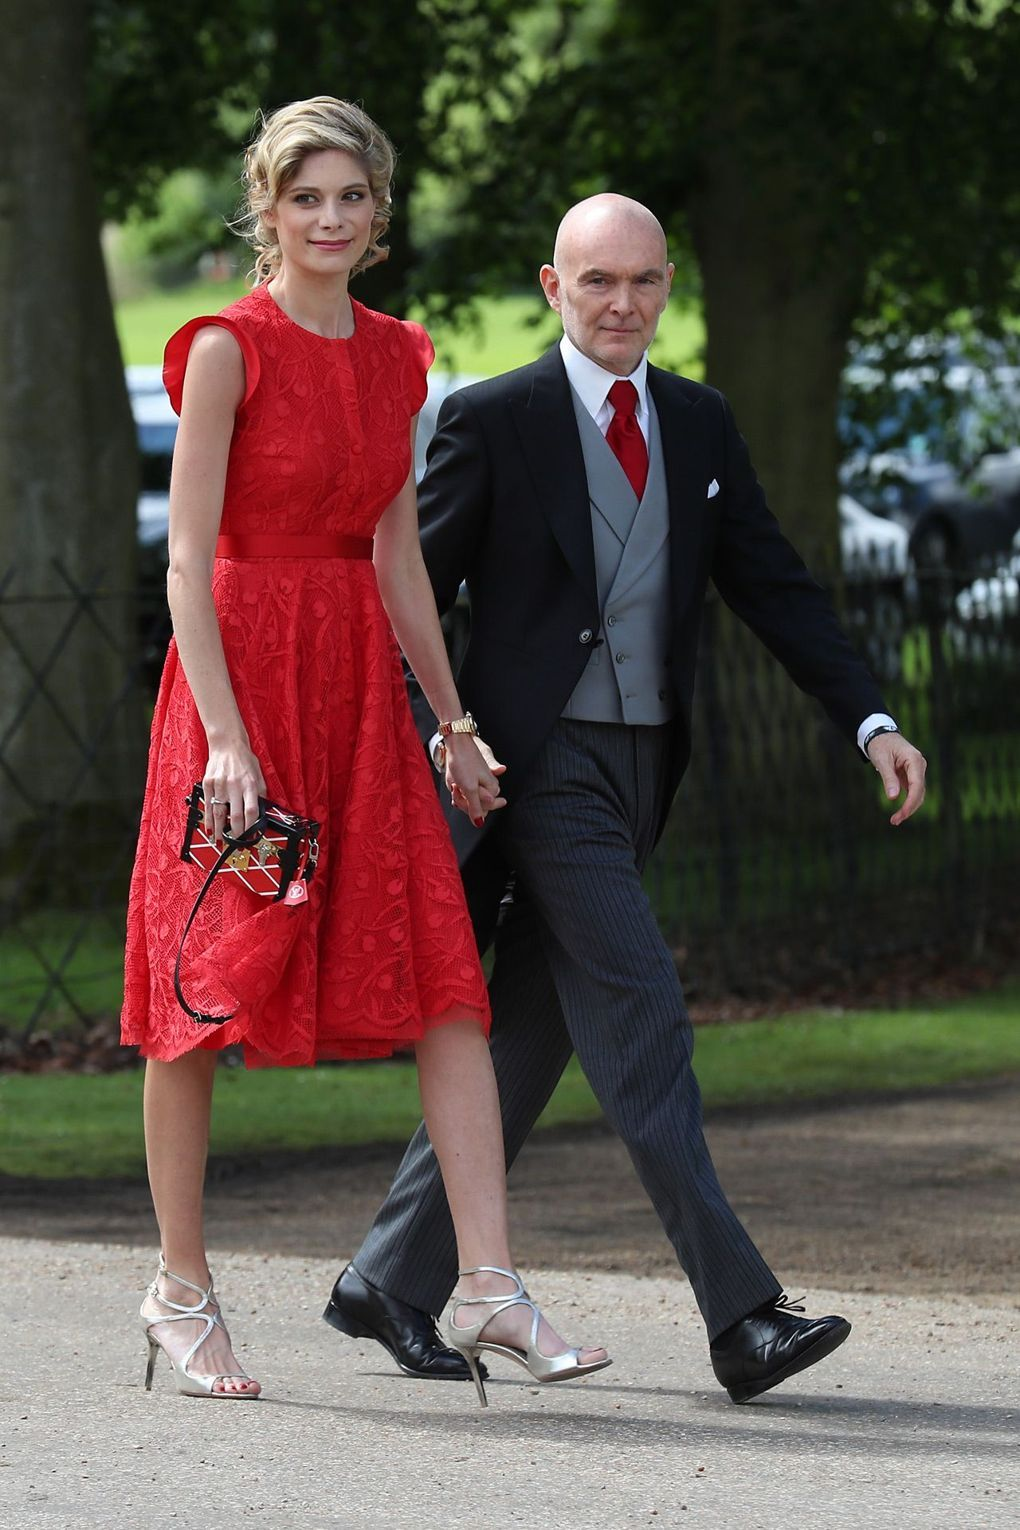 Wedding attendee dresses  Pippa Middletonus Wedding What The Guests Wore  Pippa Middleton